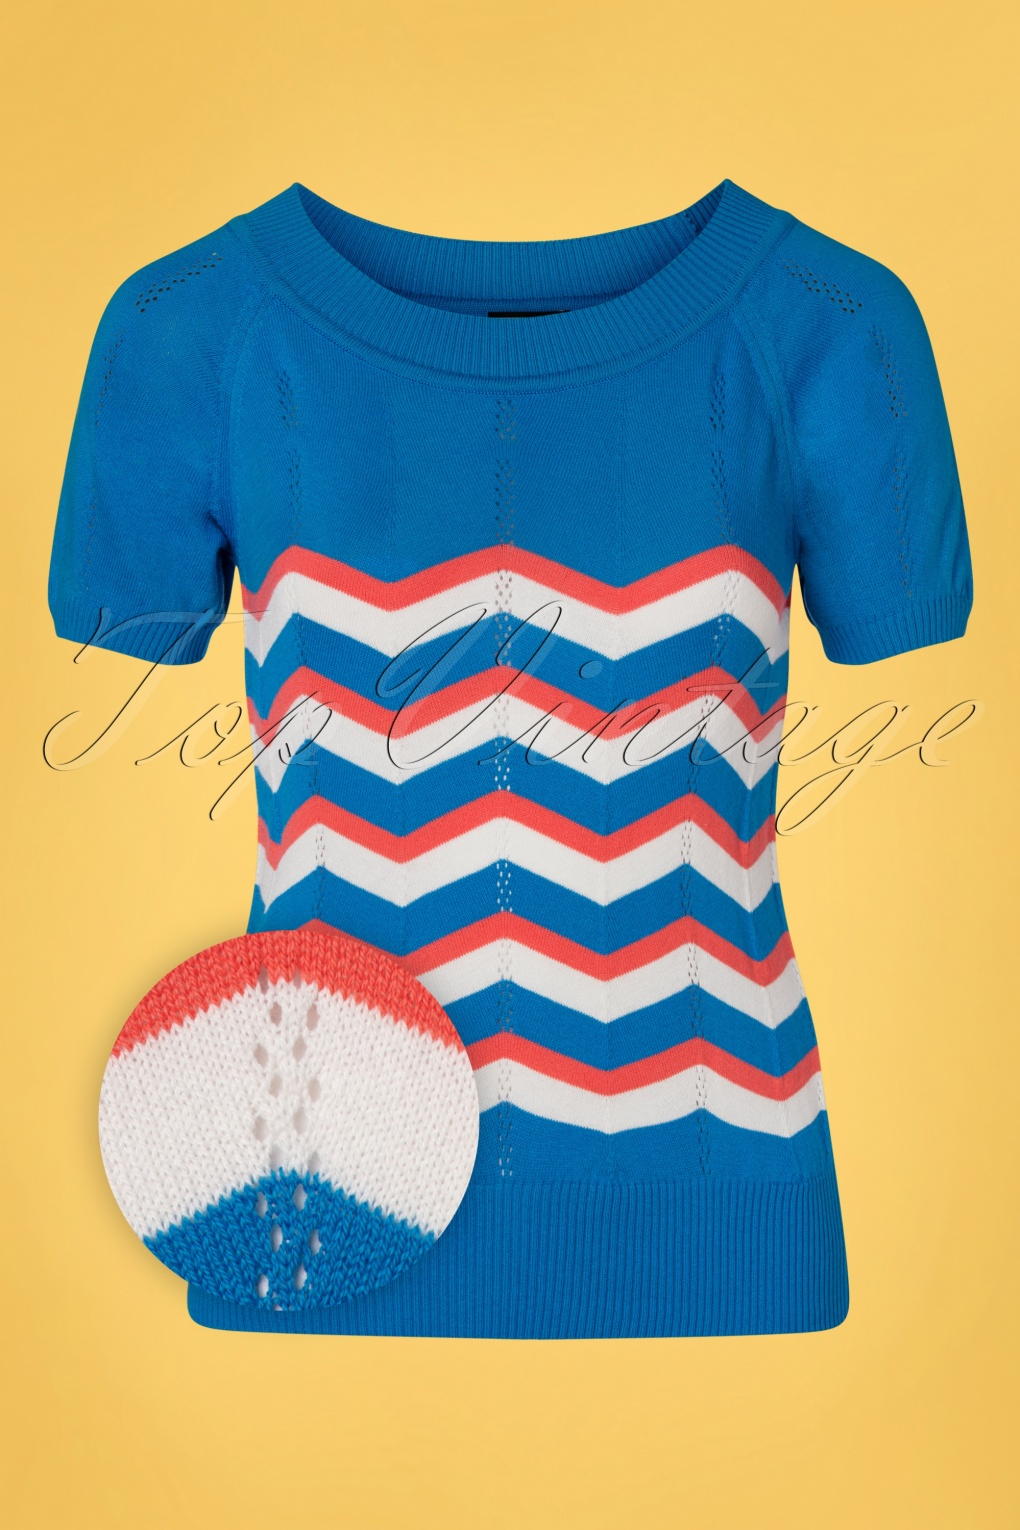 60s Shirts, T-shirts, Blouses, Hippie Shirts 60s Zick Zack Knit Top in Blue and Peach £52.67 AT vintagedancer.com